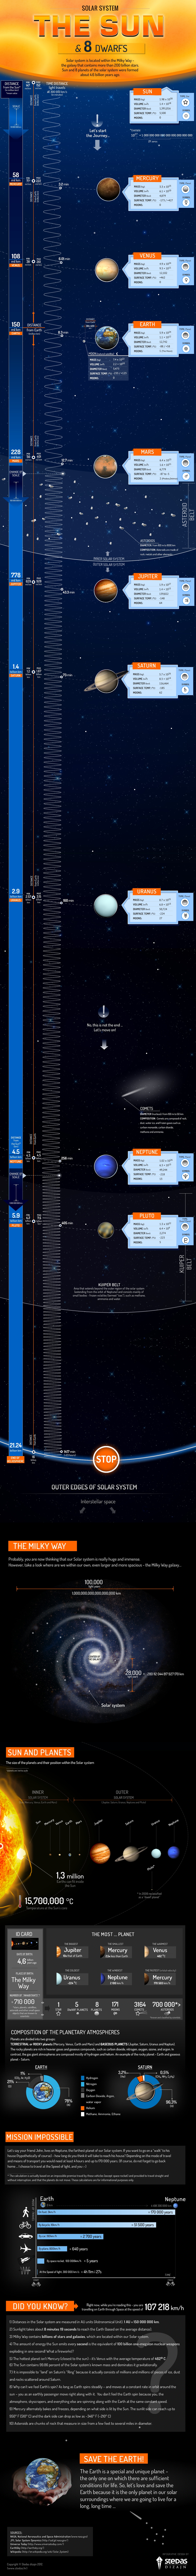 Solar System - The Sun and 8 Planets